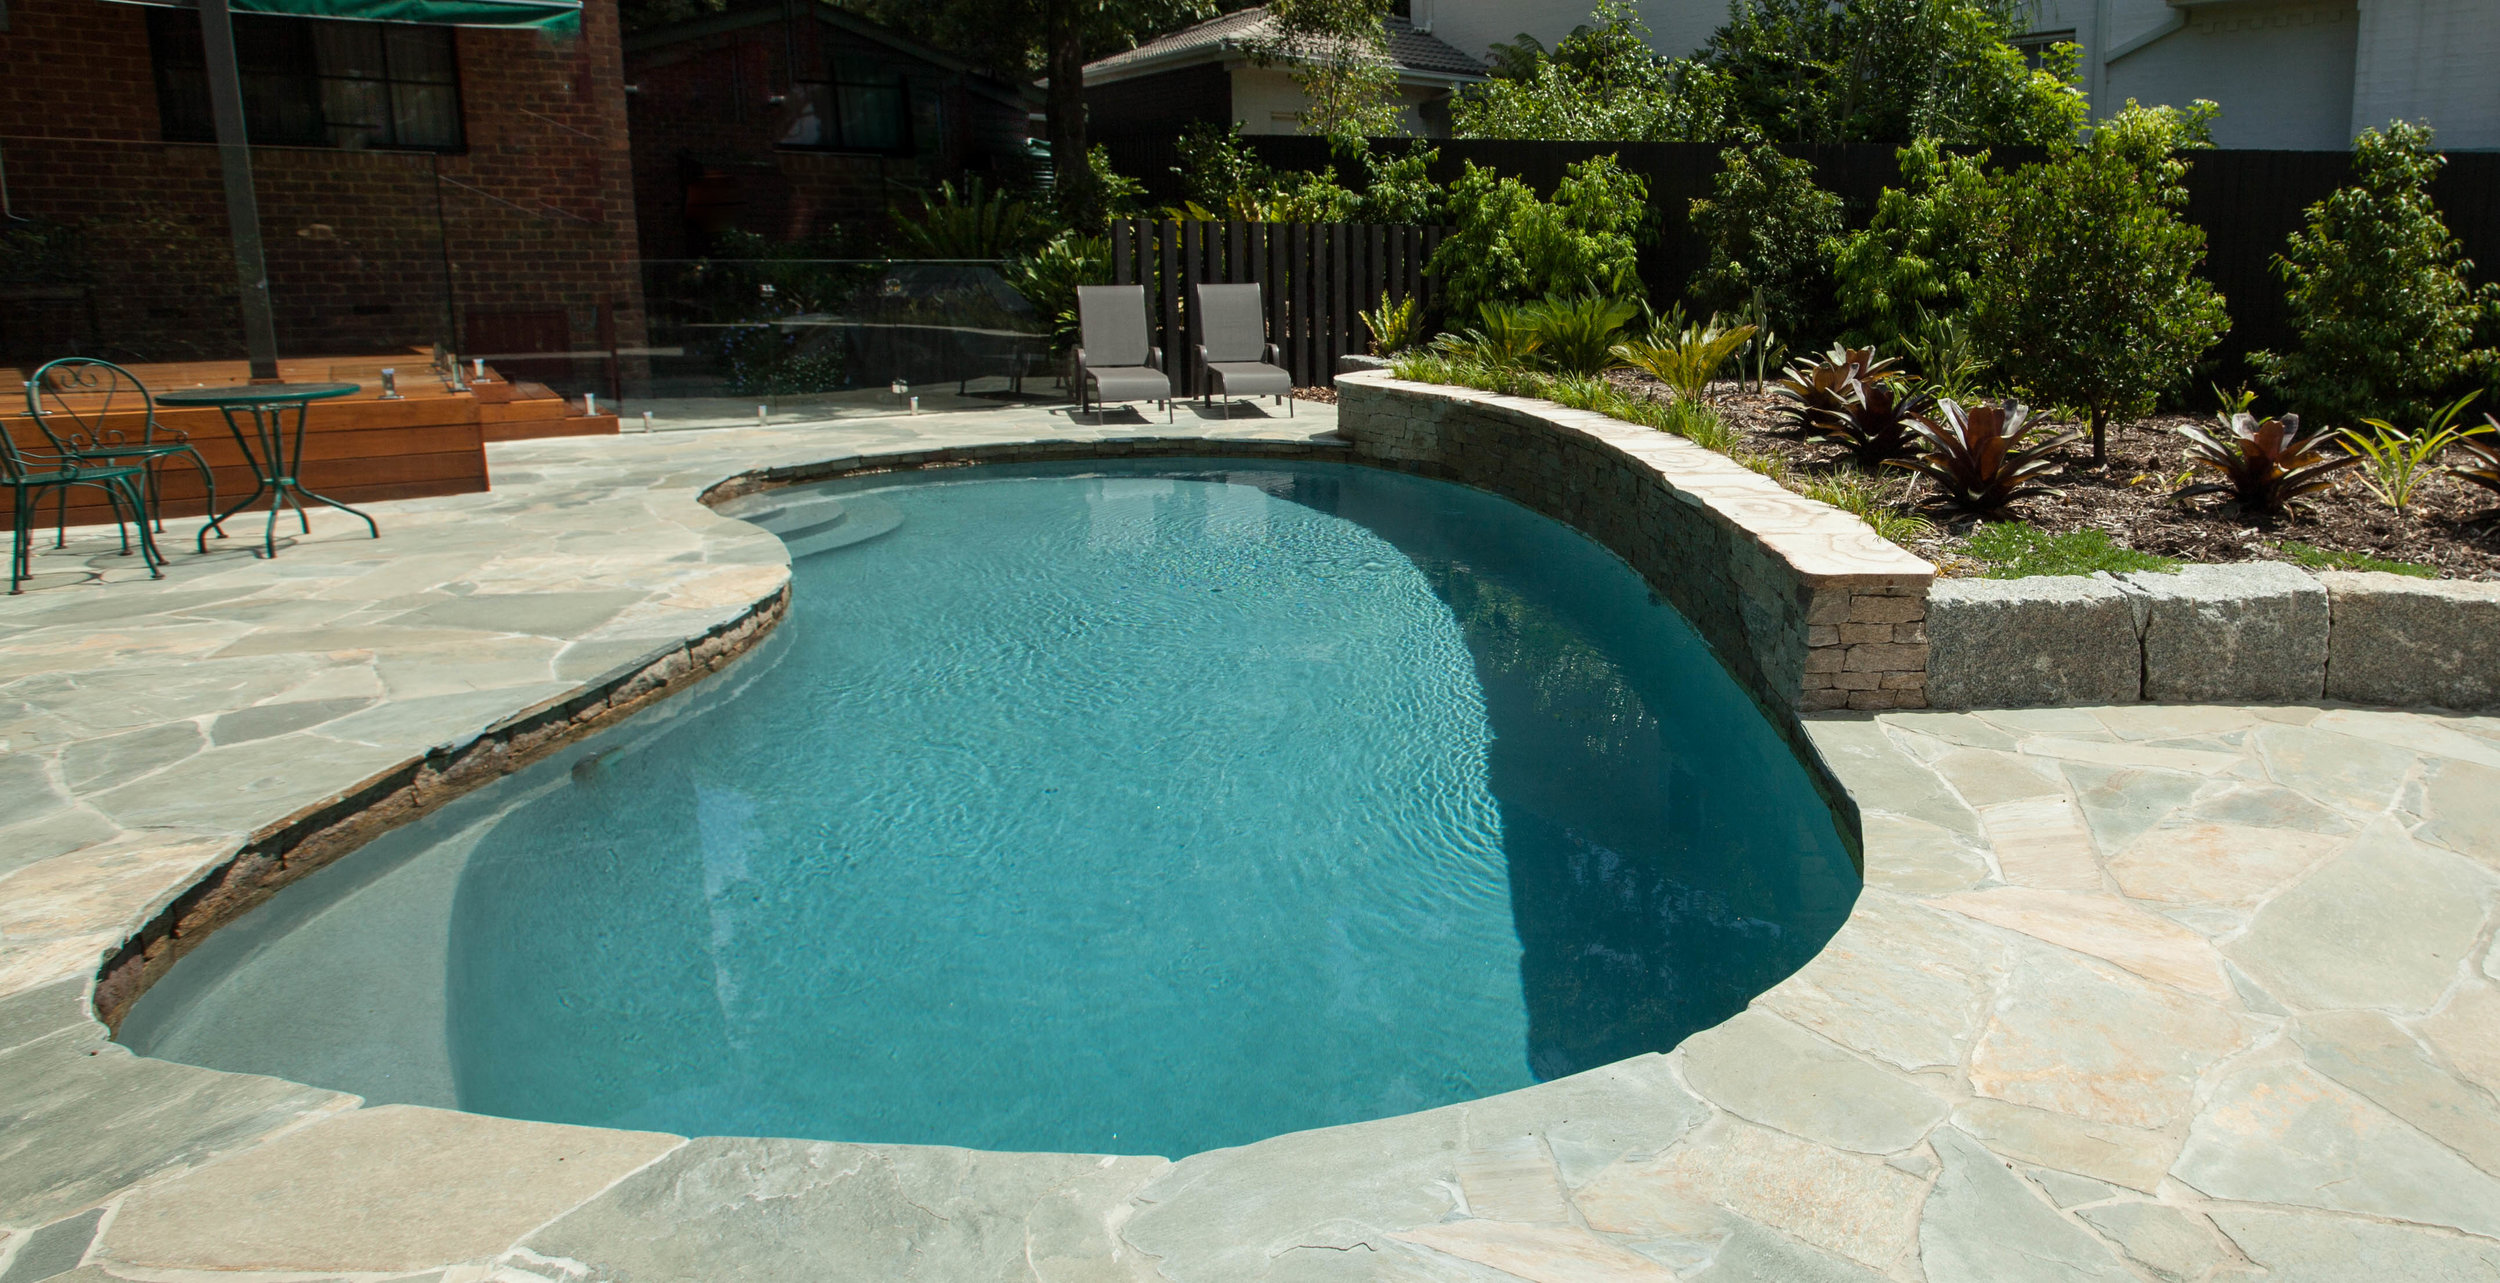 AFTER: A big improvement! Granite crazy paving gives a nod to the local area, as well as tying in well with the granite accents in the waterfall and in retaining walls around the garden areas. The new pool surface is light grey, making for a much more refreshing looking swim! Visibility from the new and improved decked entertaining area is much better, too, thanks to the frameless glass pool fencing. Timber posts give an extra detail, are pool safe, and break up all the fencing at each end.